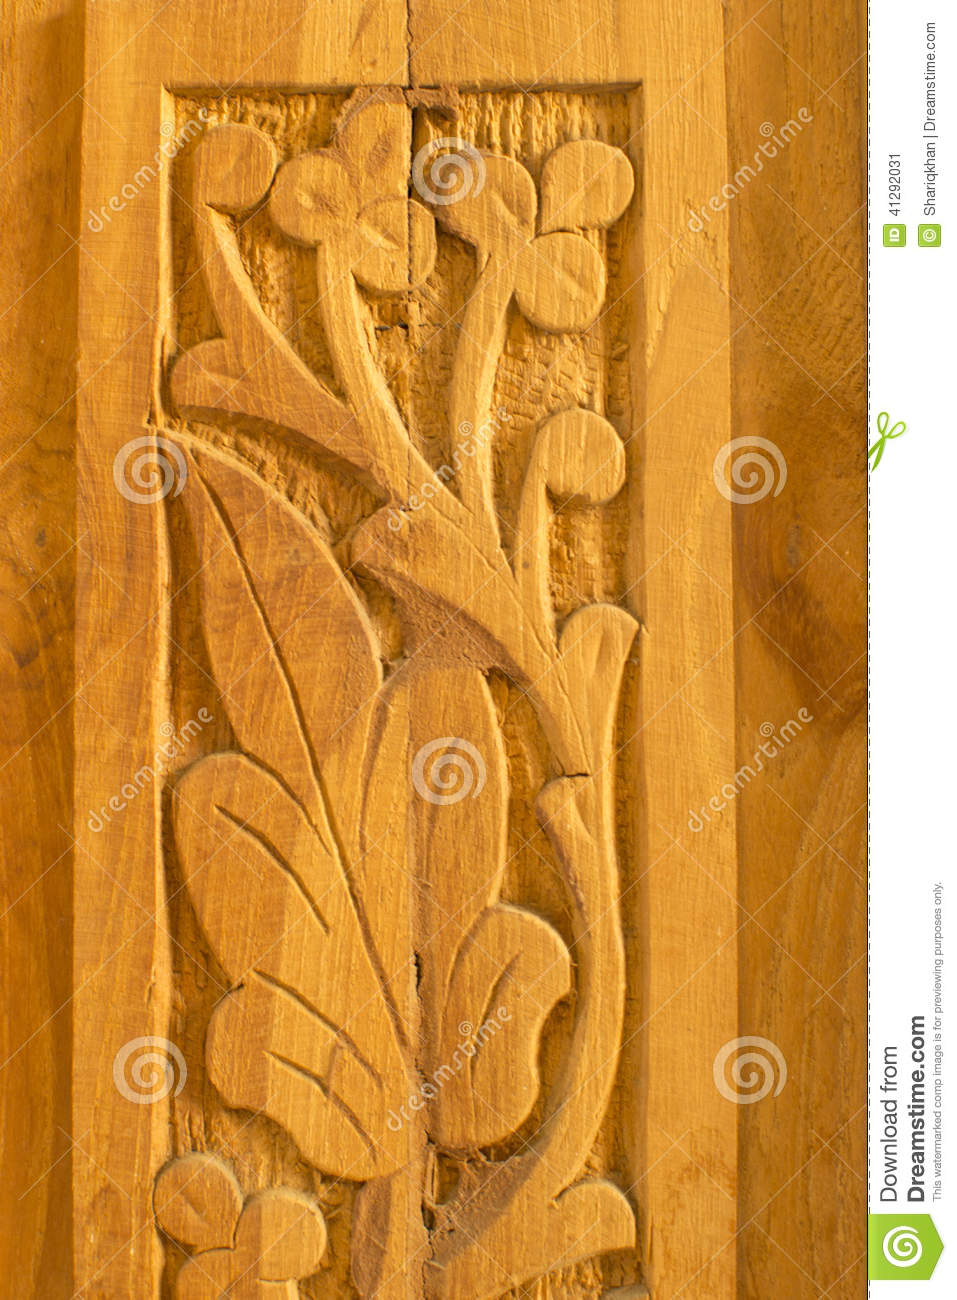 Wood Carving Art And Pattern Stock Image Image 41292031